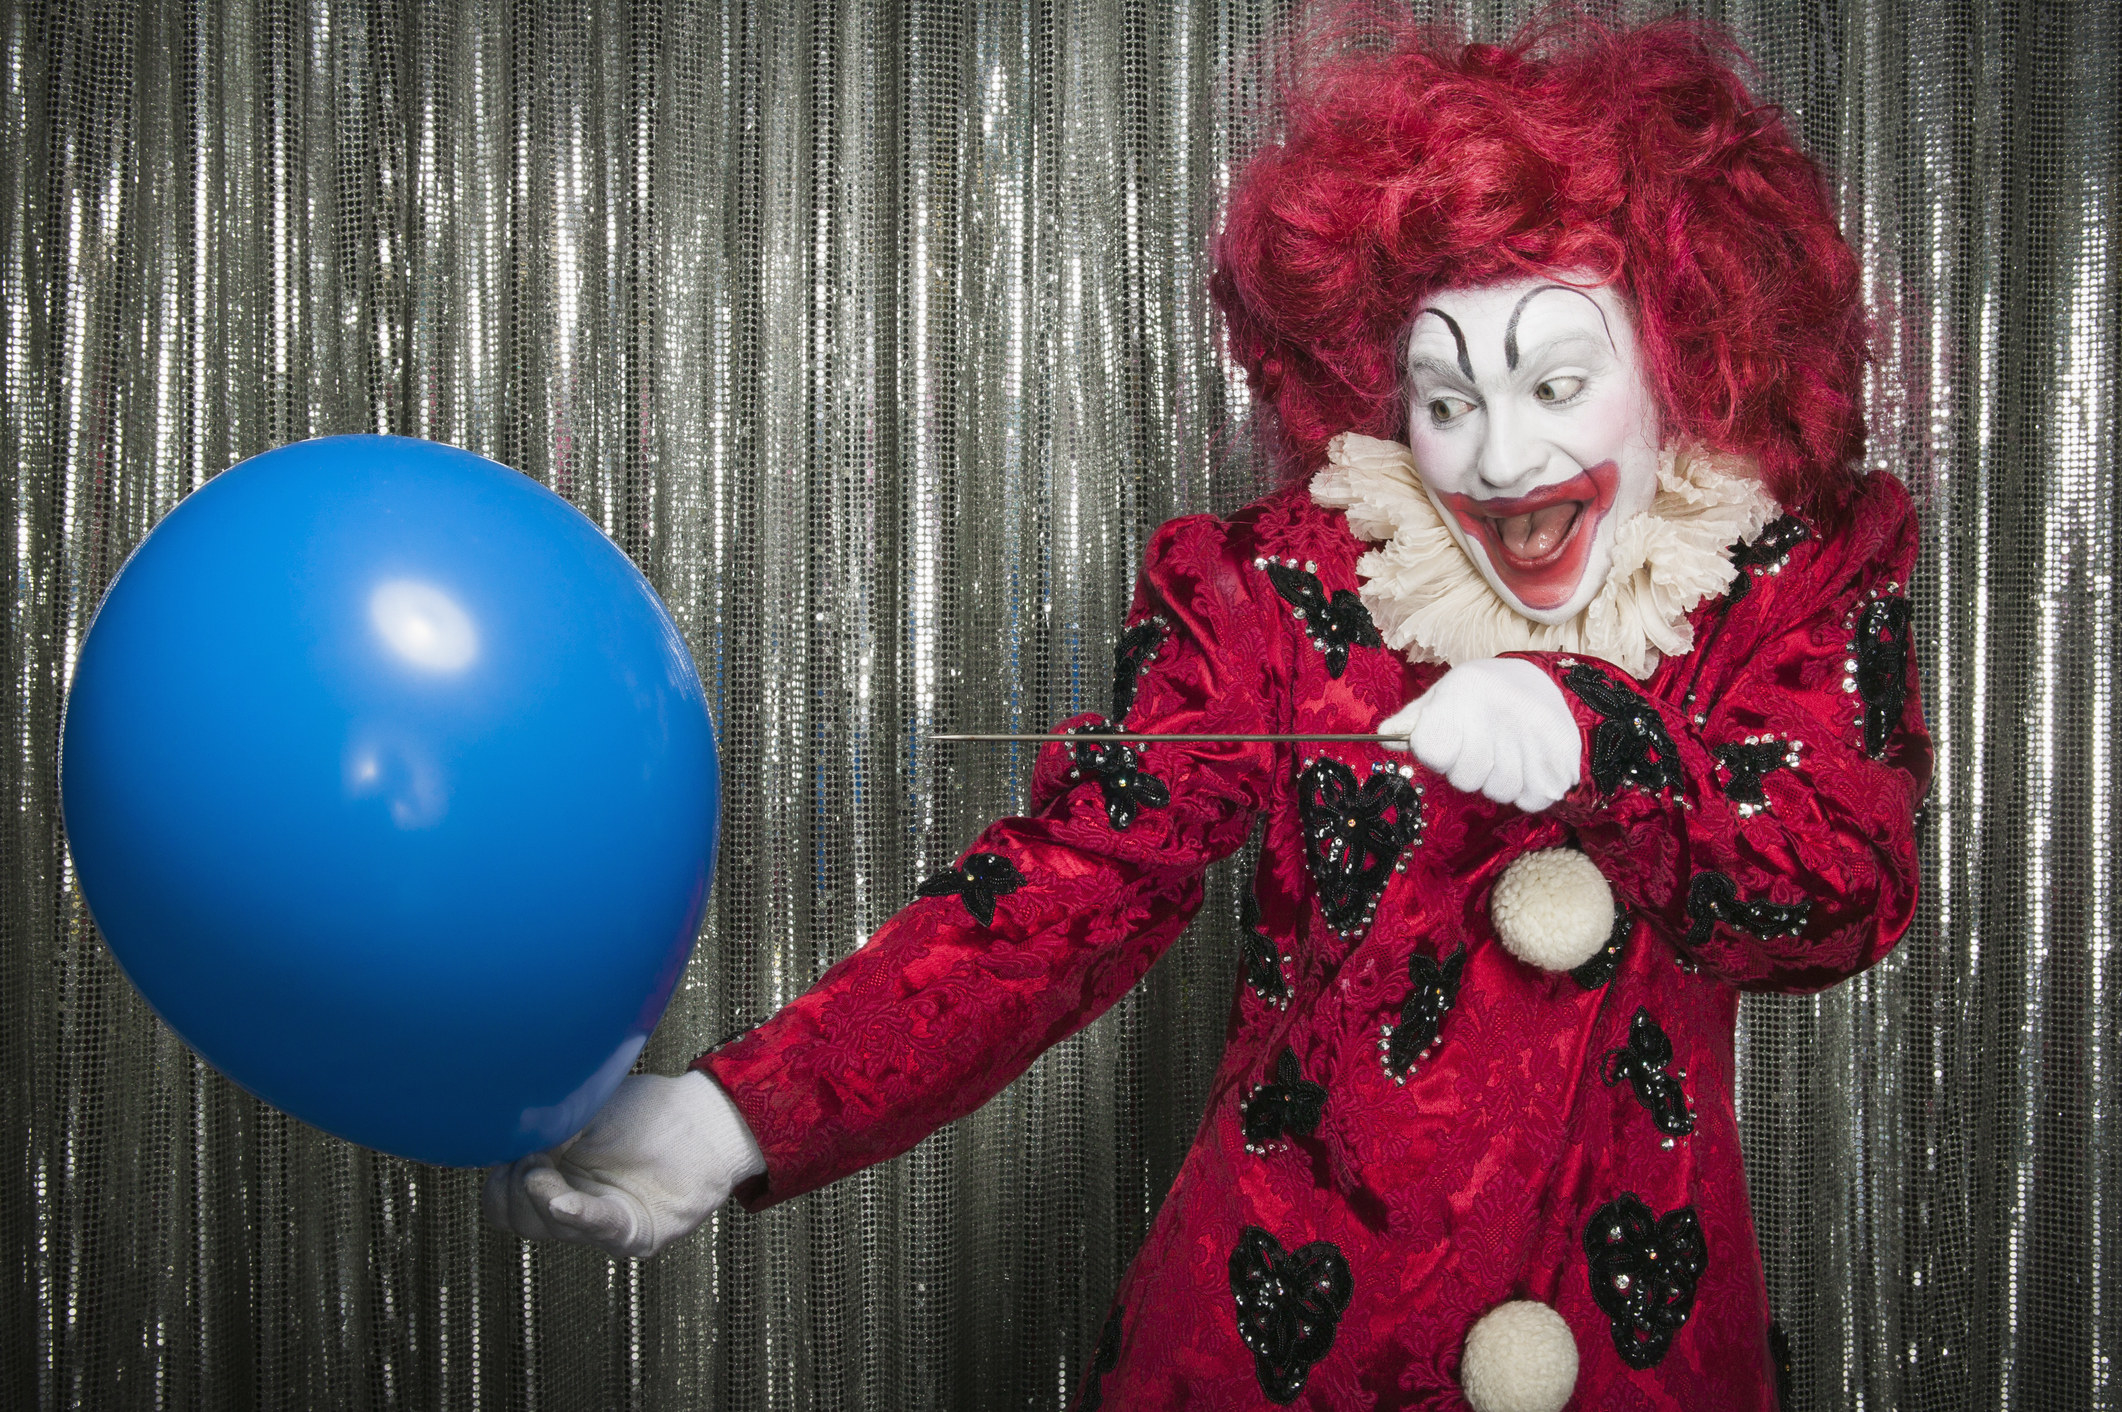 A clown pops a balloon with a needle.